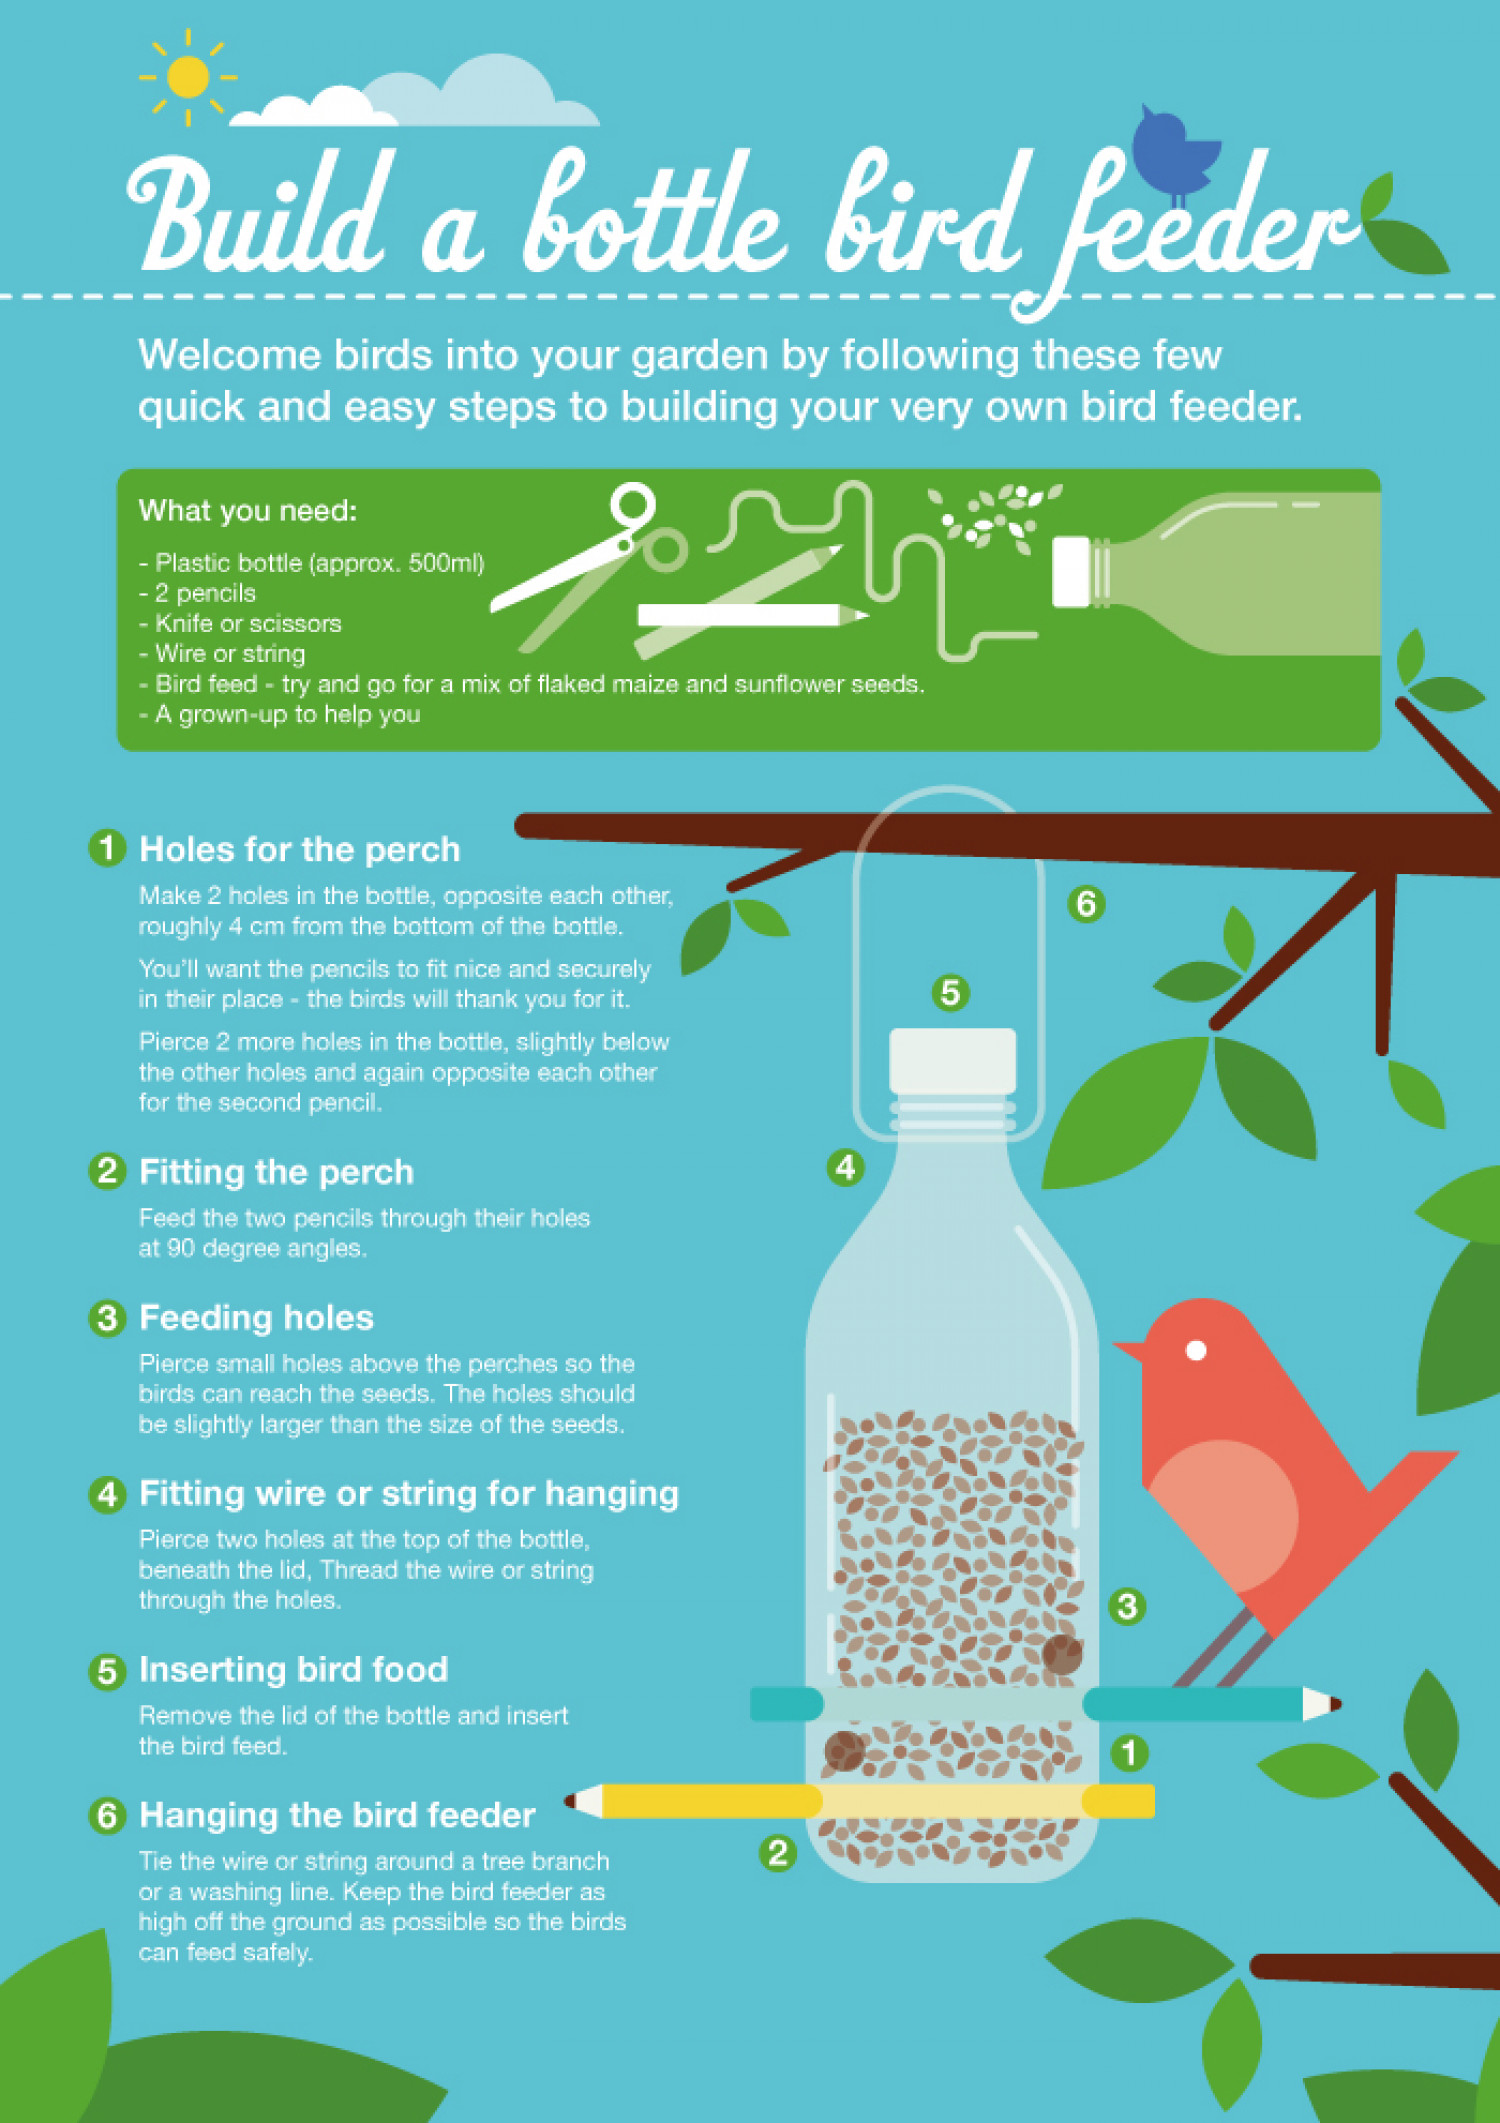 Build a bottle bird feeder Infographic